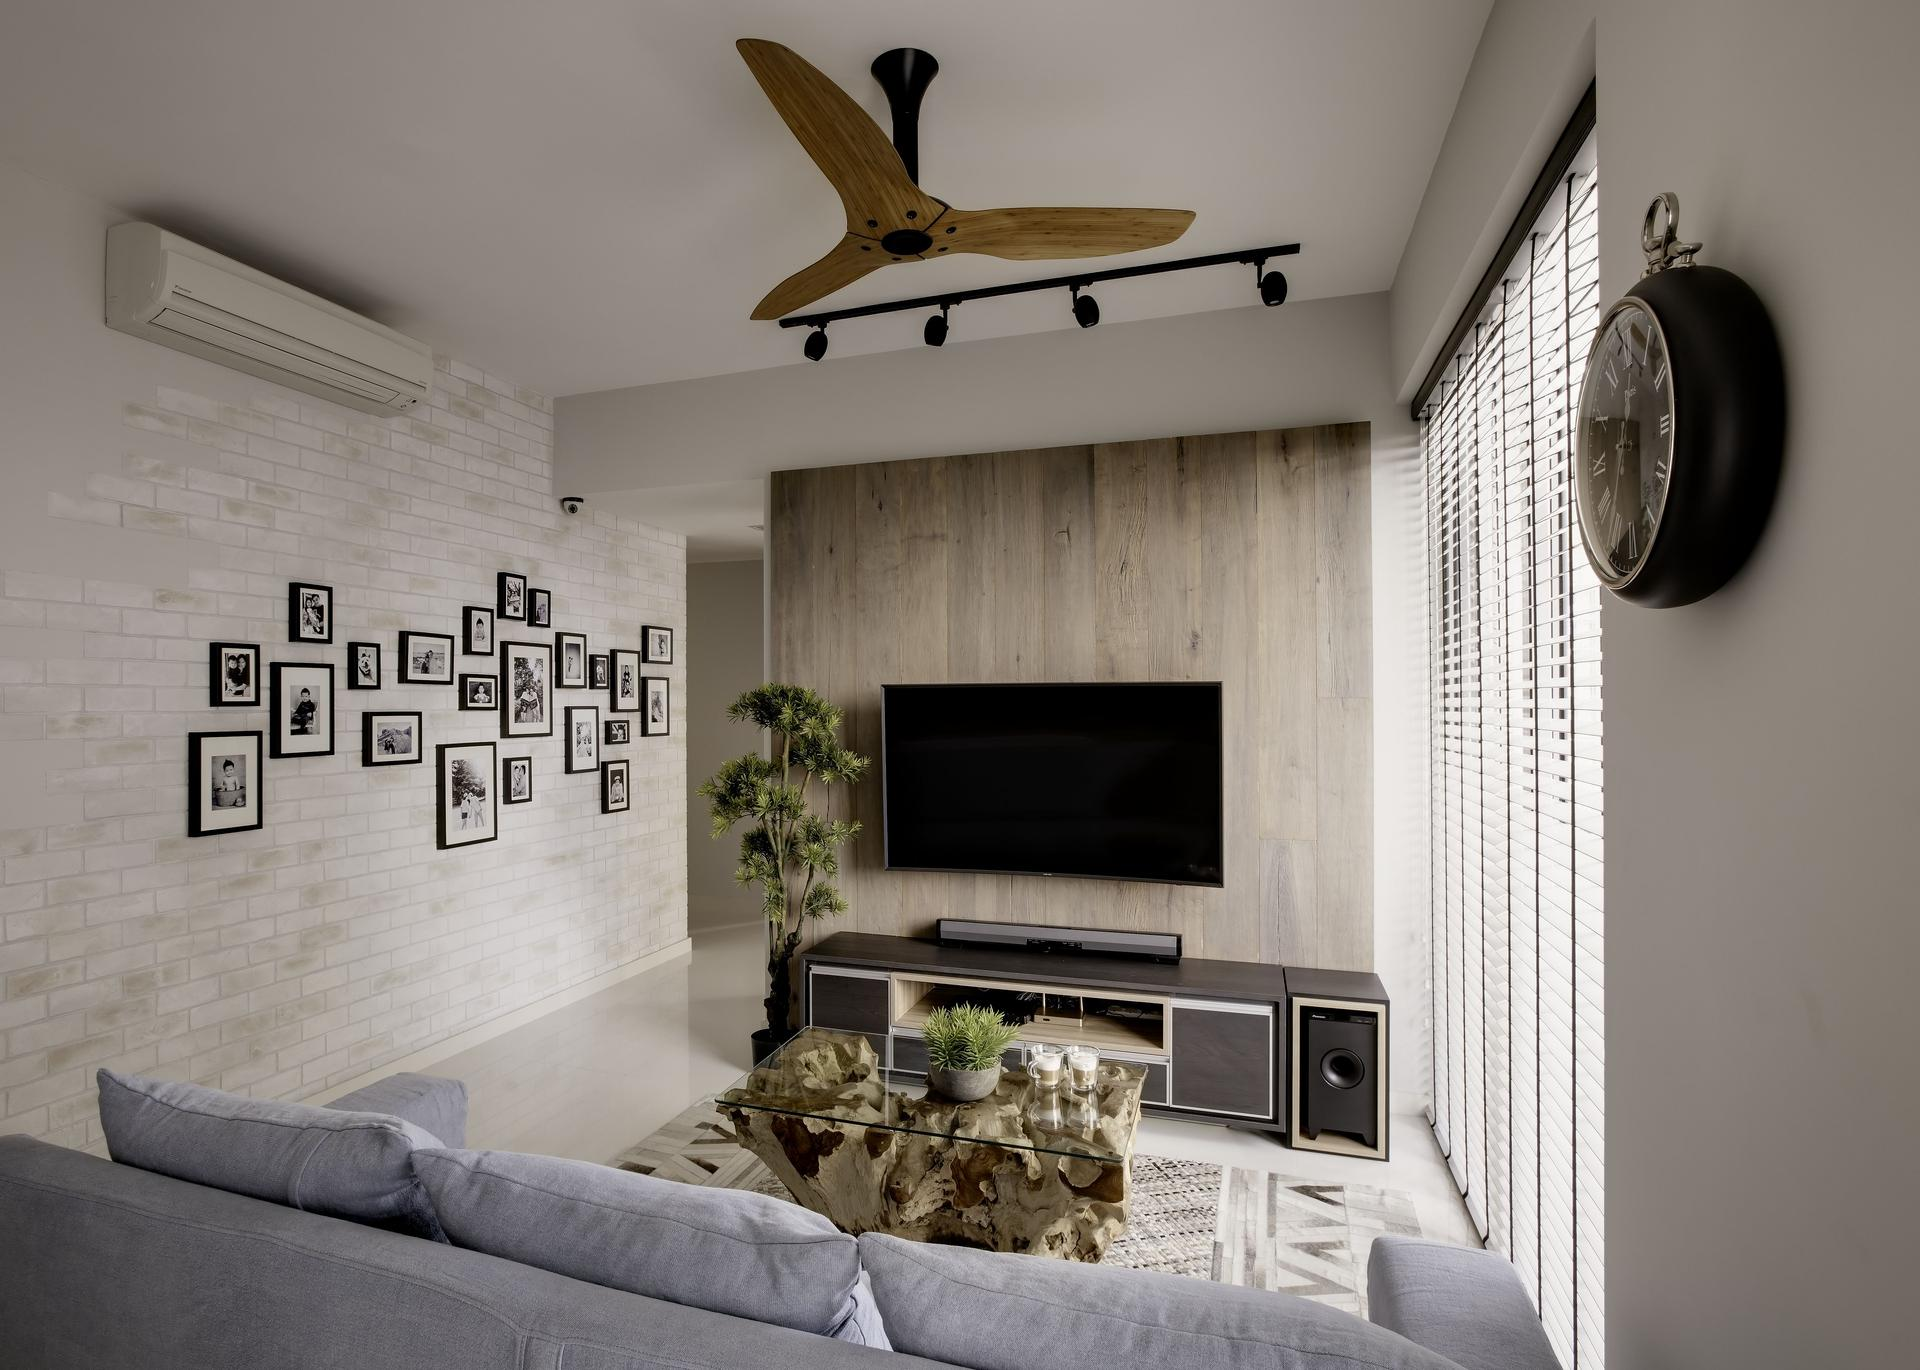 Unapologetically and luxuriously - How to bill for interior design services ...